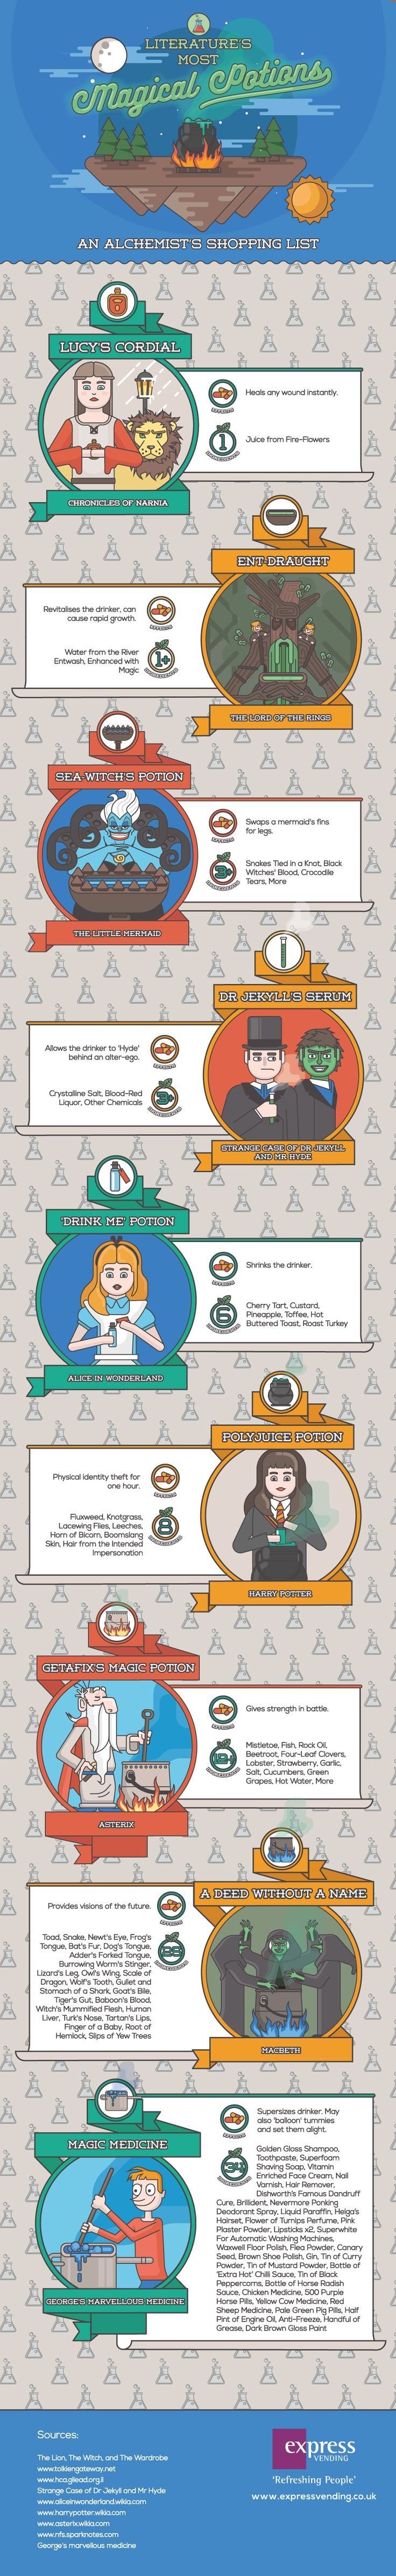 Literature's most magical potions.